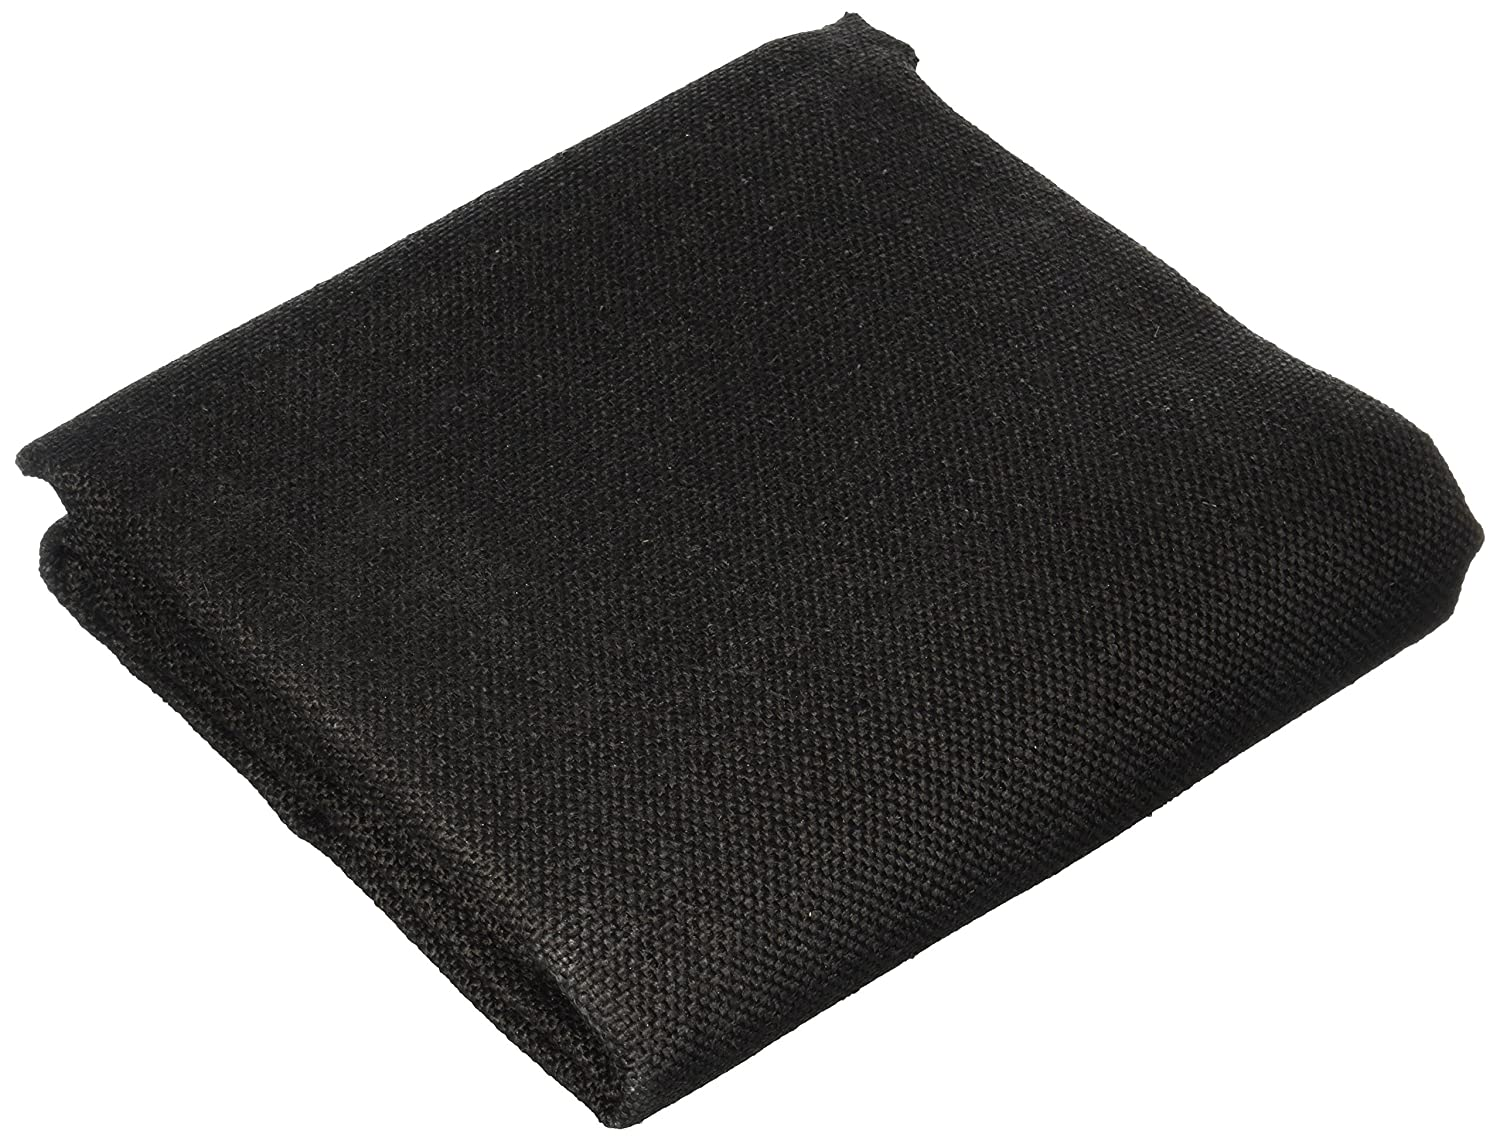 3. Tillman Heavy Duty Welding Blanket